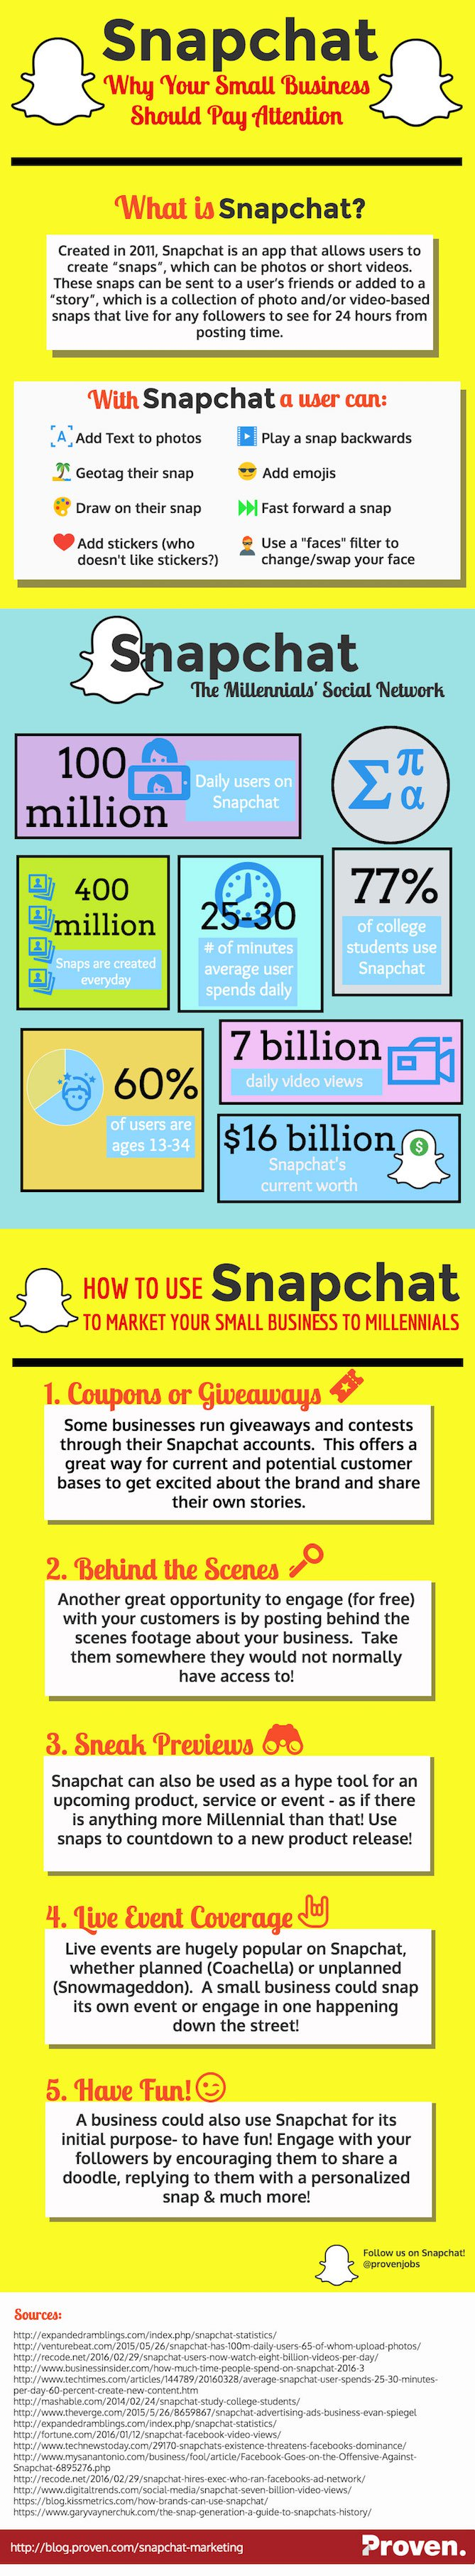 Snapchat Marketing Small Business Infographic